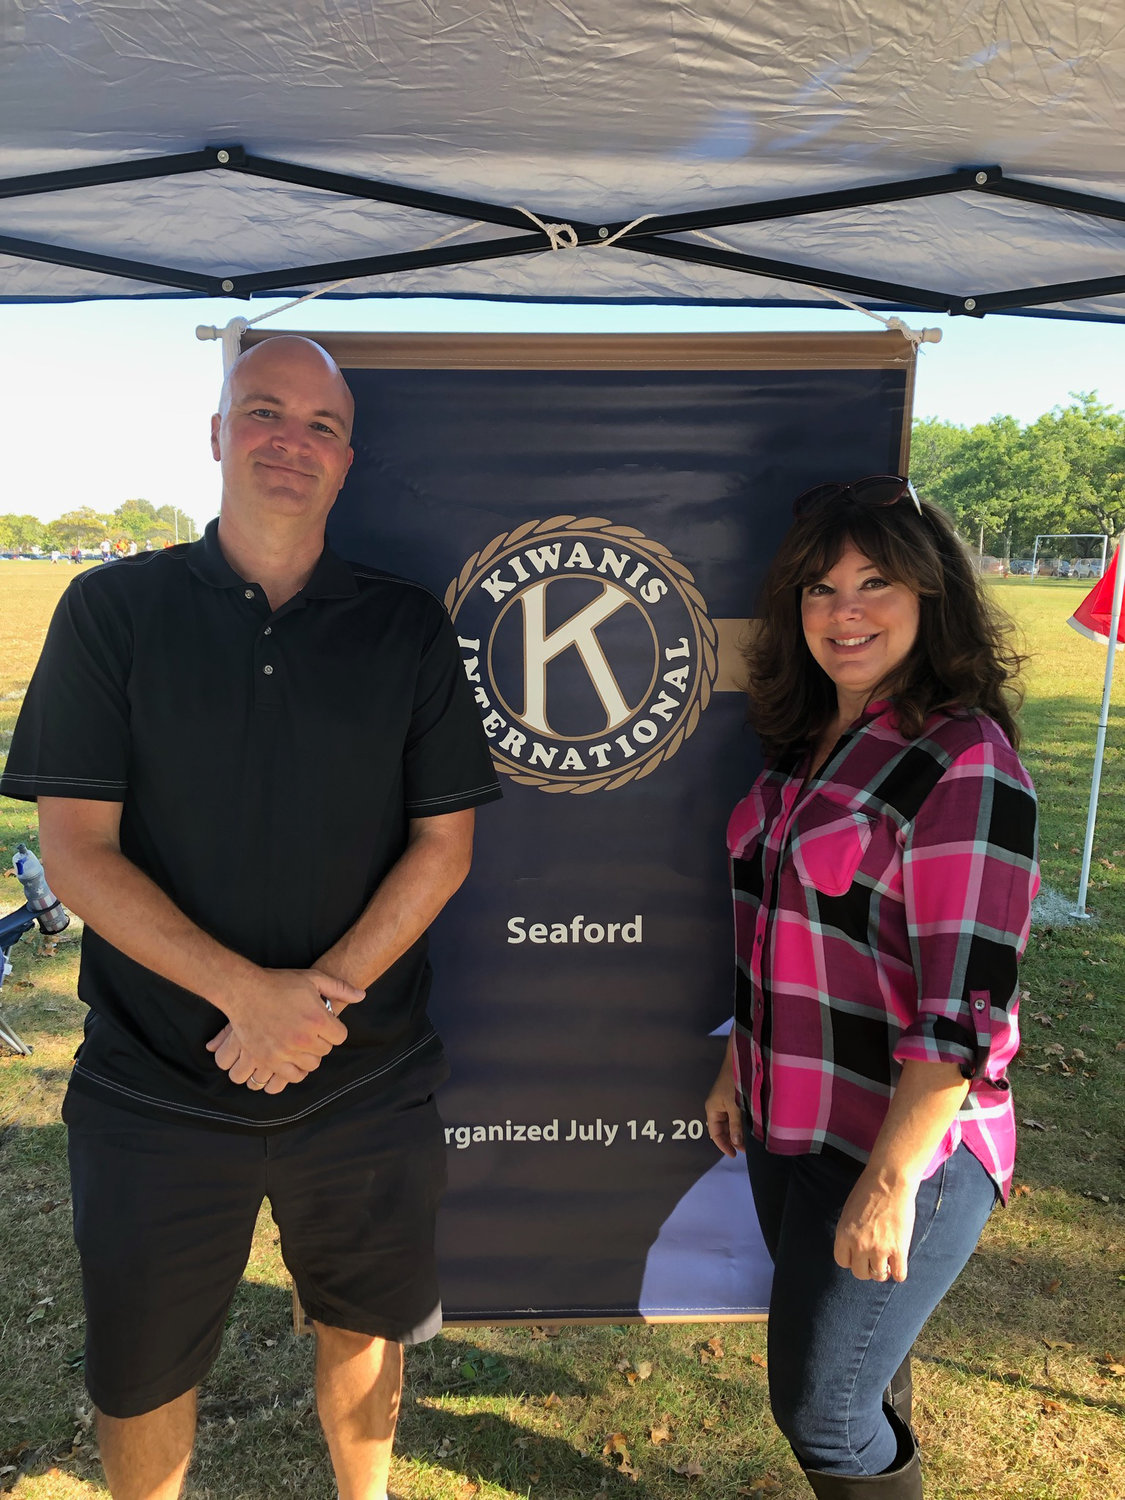 Seaford Kiwanis Food Drive Coordinator Donna Jebailey and Christopher Carini, a candidate for the 5th Councilmanic District seat, ran the community food drive from 10 a.m. to 3 p.m.